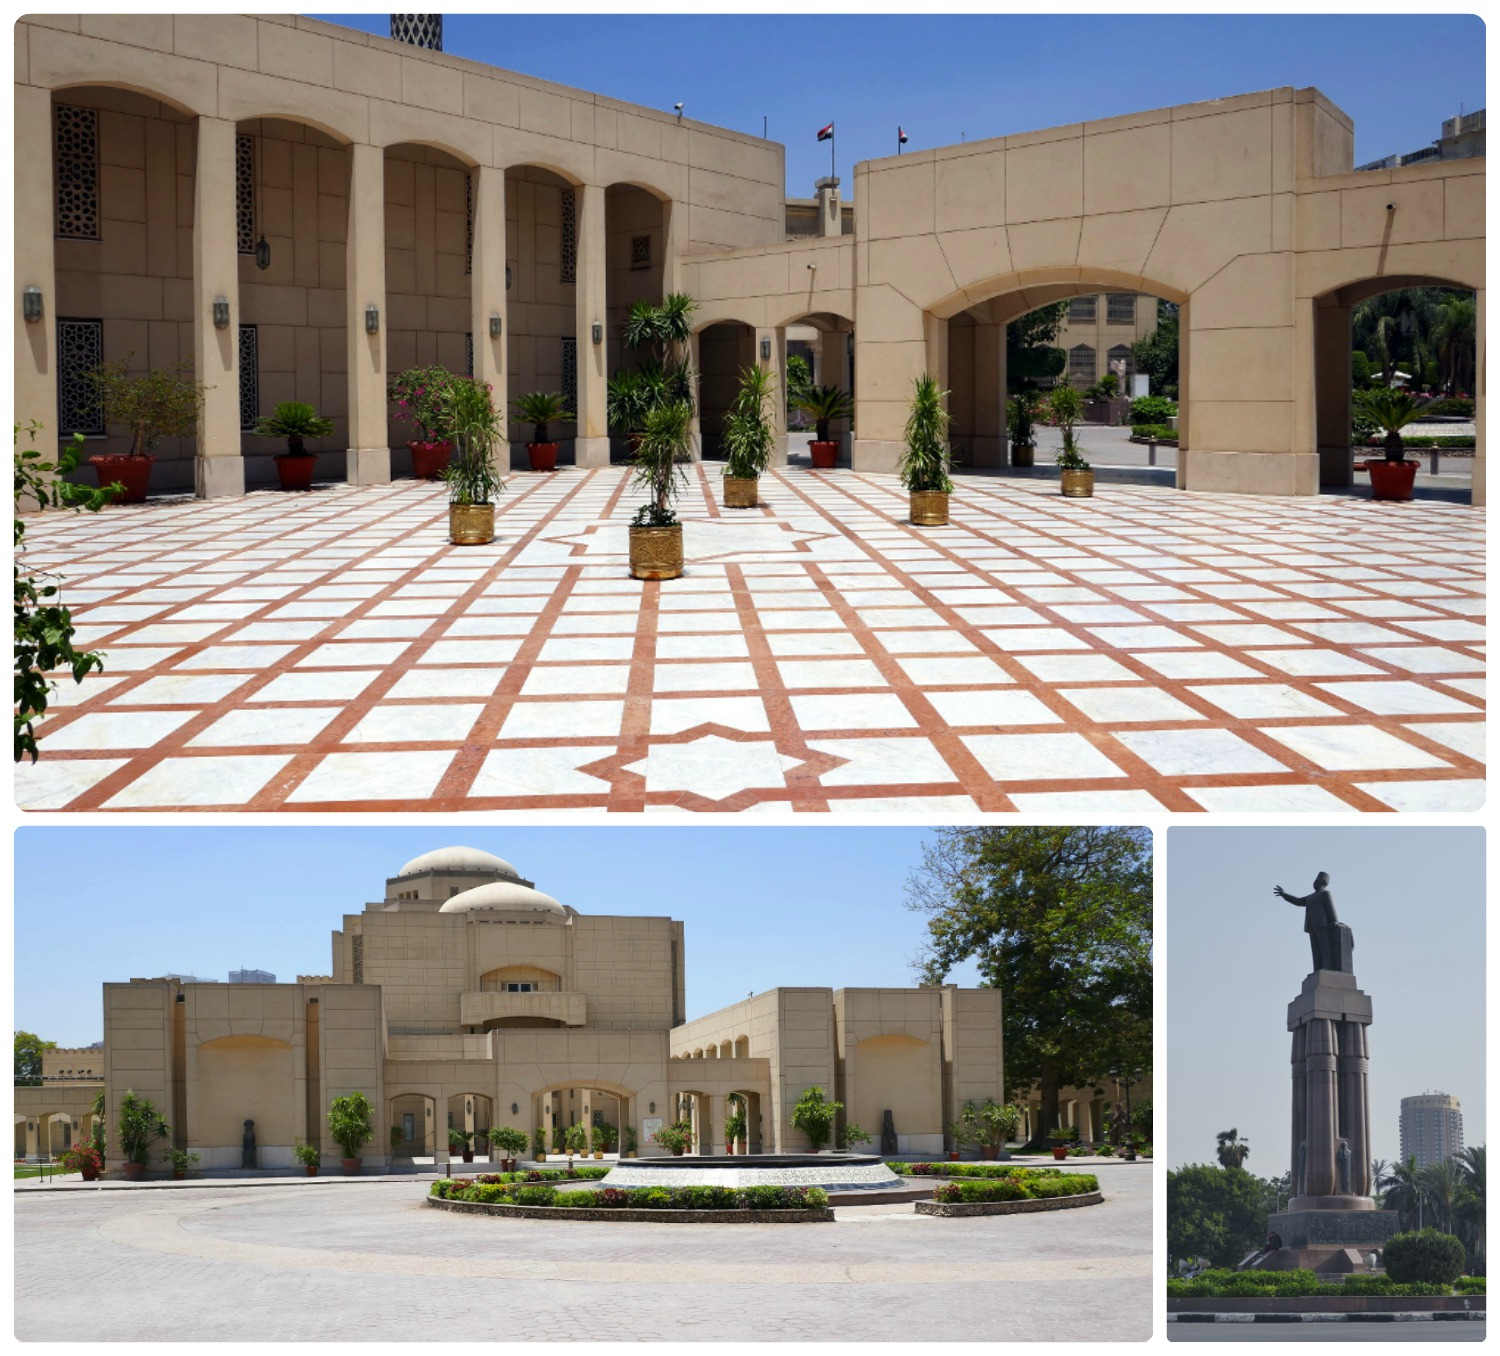 Clockwise (from the top): Cairo Opera House courtyard, the Saad Zaghloud Statue in Opera Square - the roundabout in front of the Cairo Opera House and the Museum of Modern Egyptian Art complex, the exterior of the Cairo Opera House.